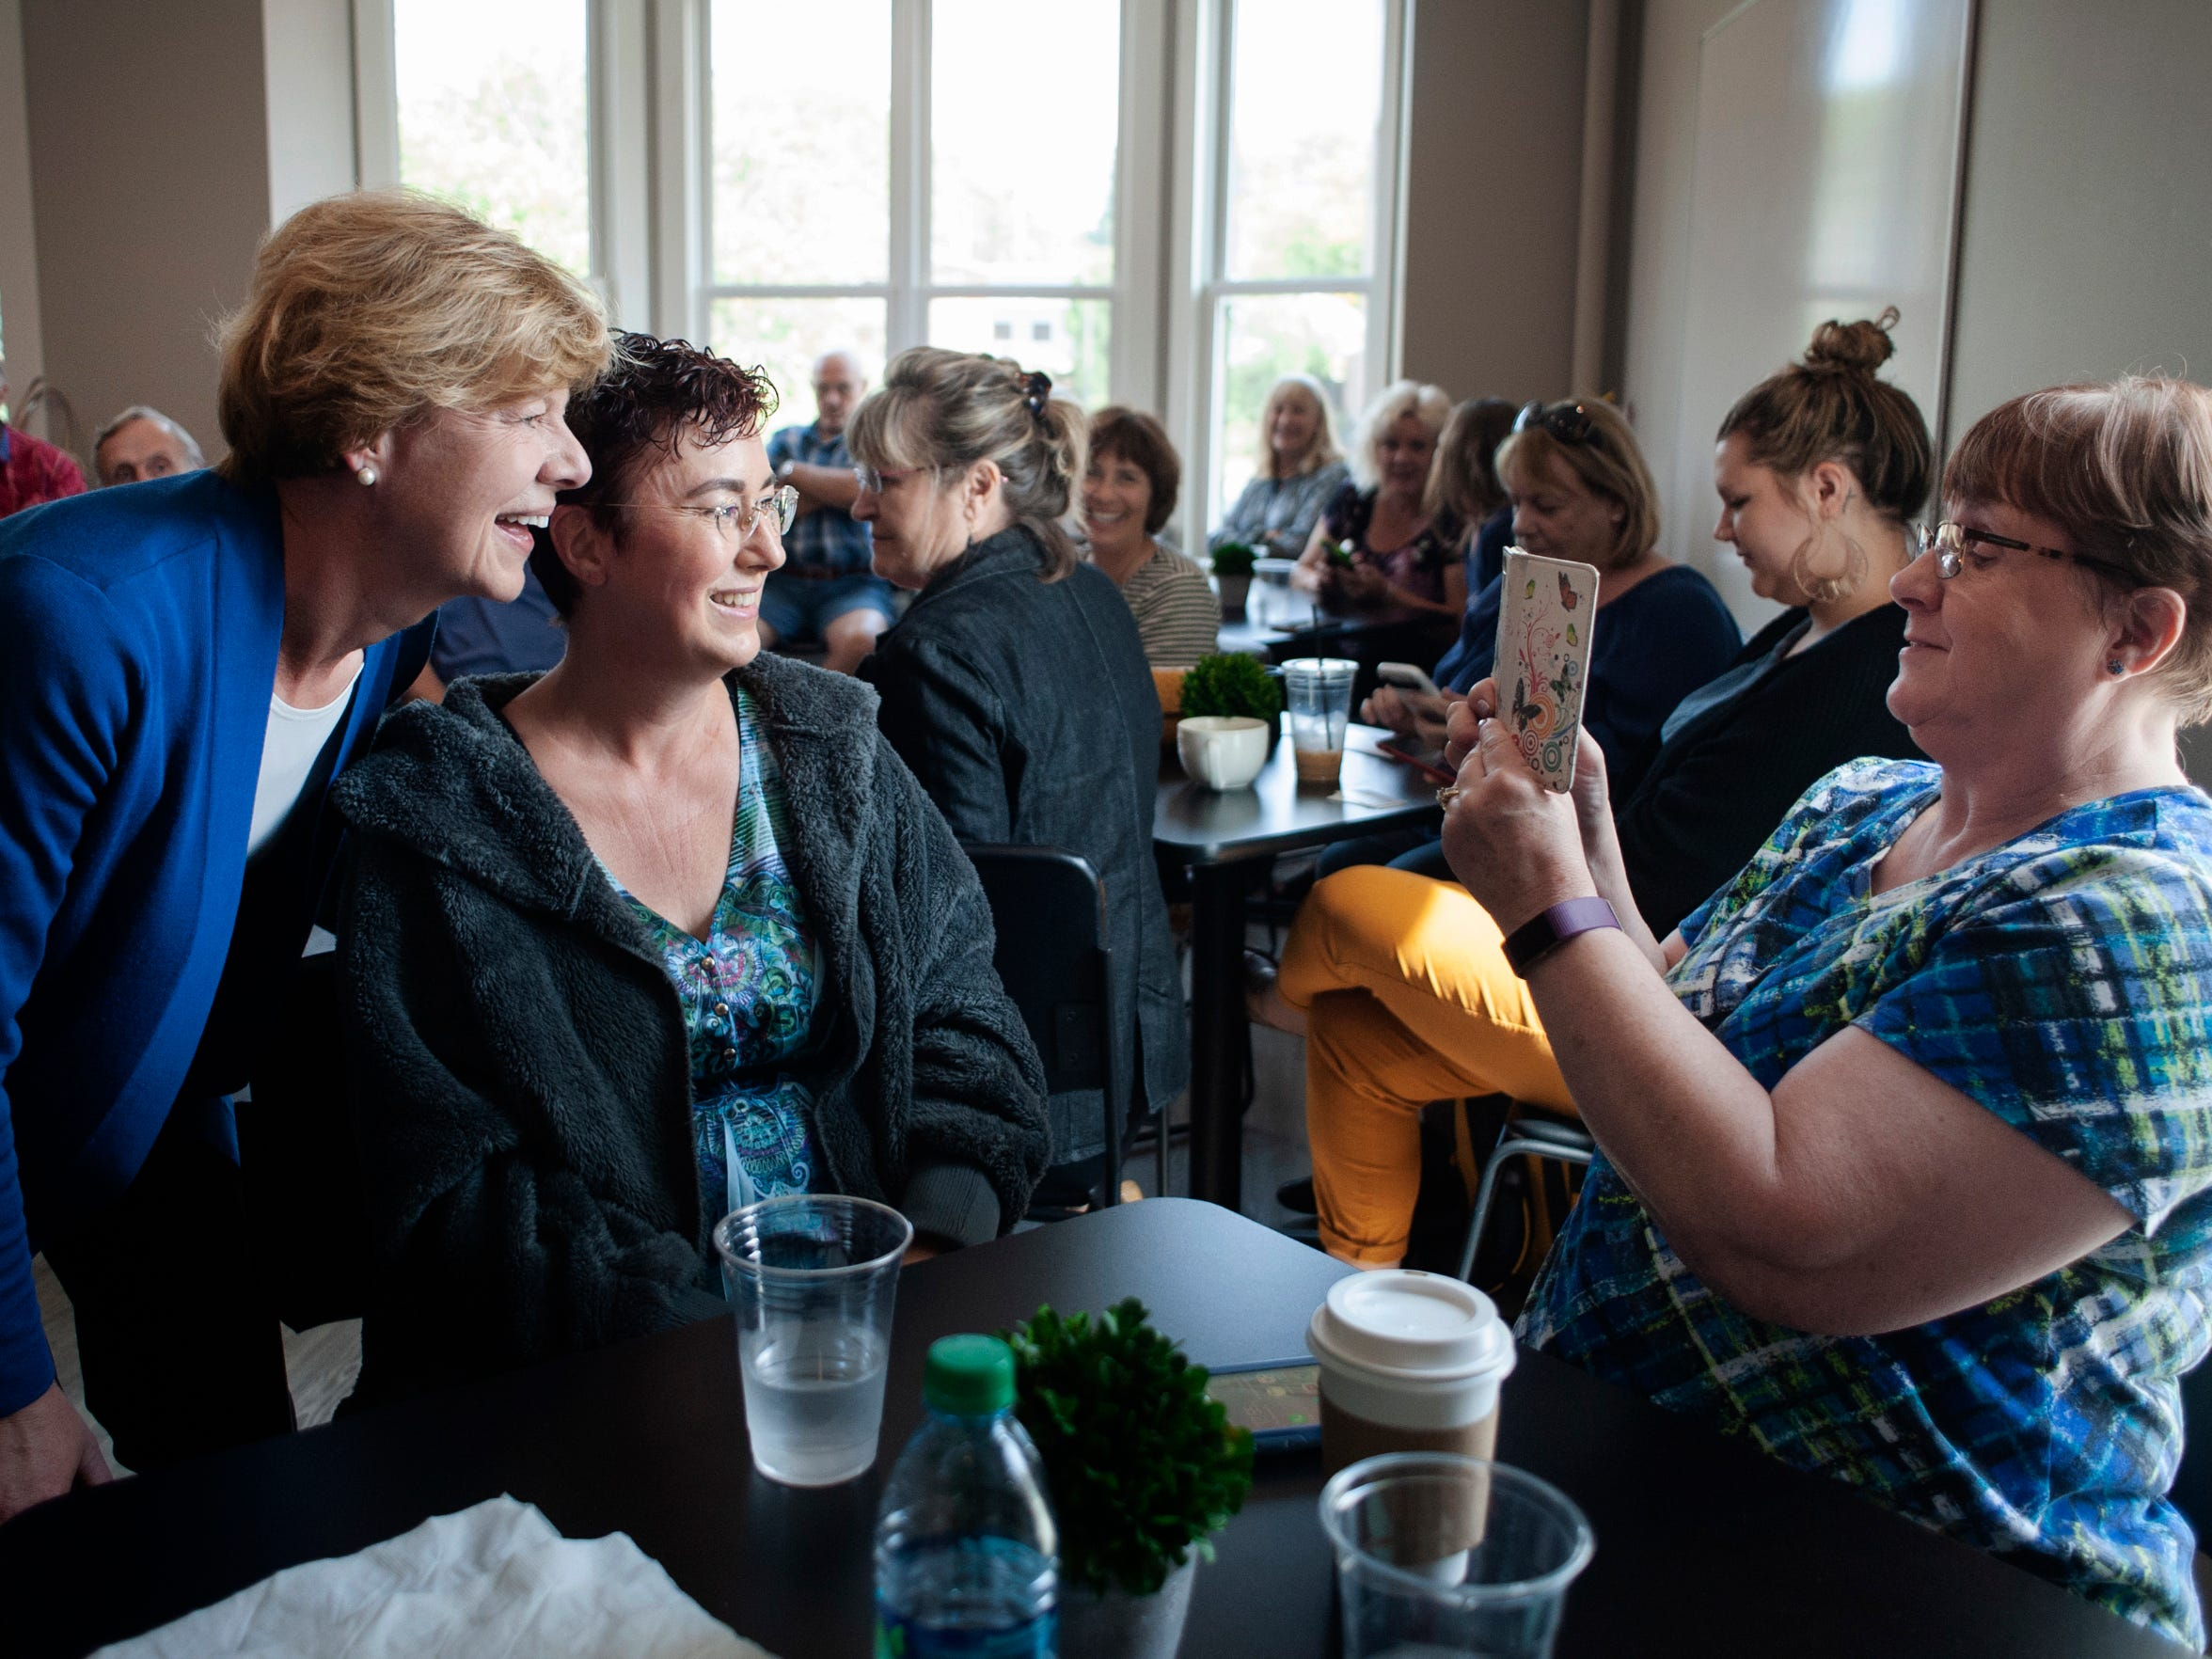 U.S. Sen. Tammy Baldwin (left) poses for a photo with Janesville resident Alicia Jenski during a campaign event  Sept. 20 at Bodacious Brew in downtown Janesville.